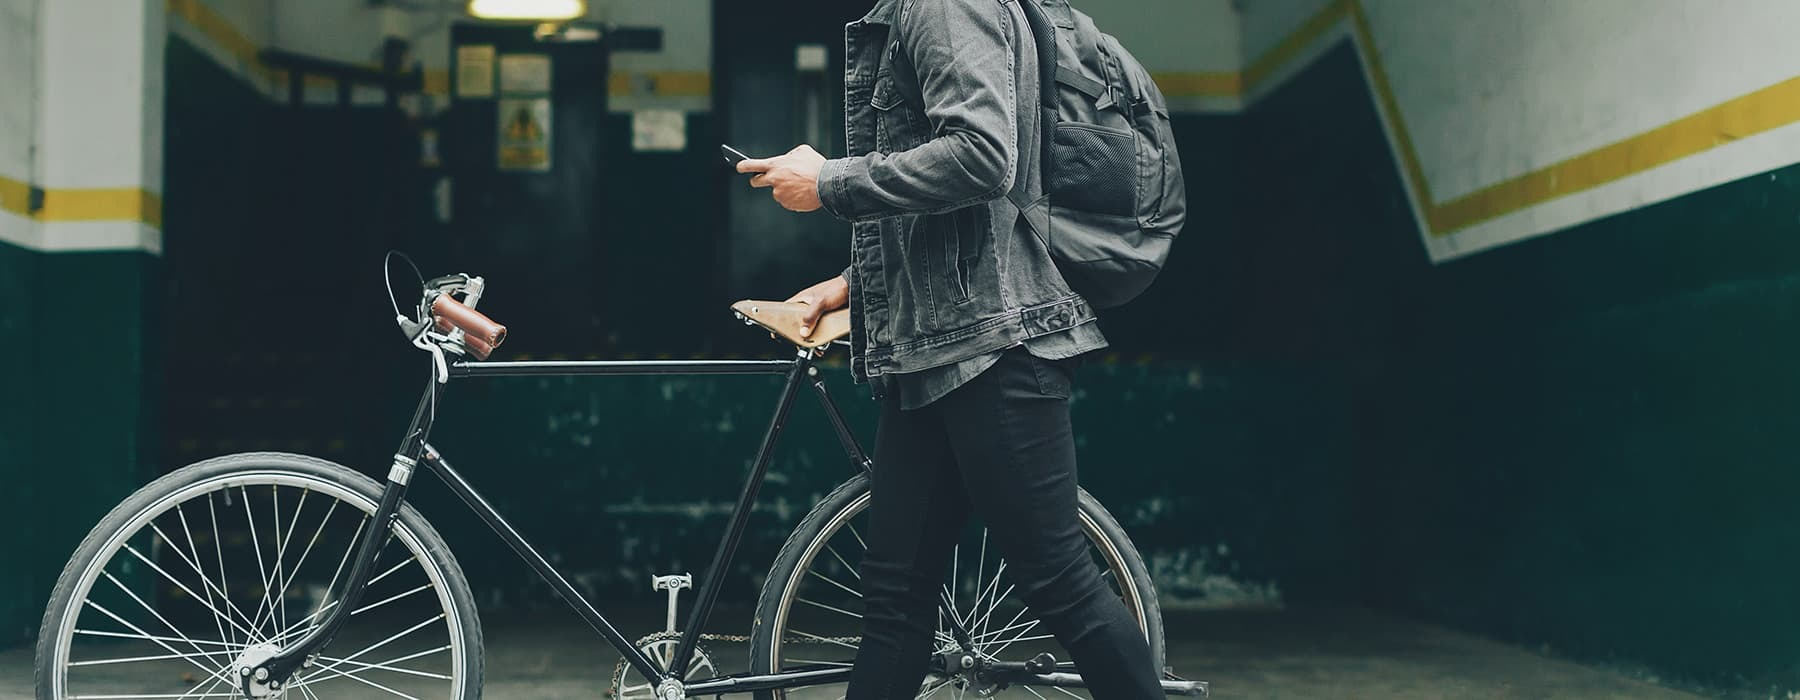 lifestyle image of a person walking with their bicycle